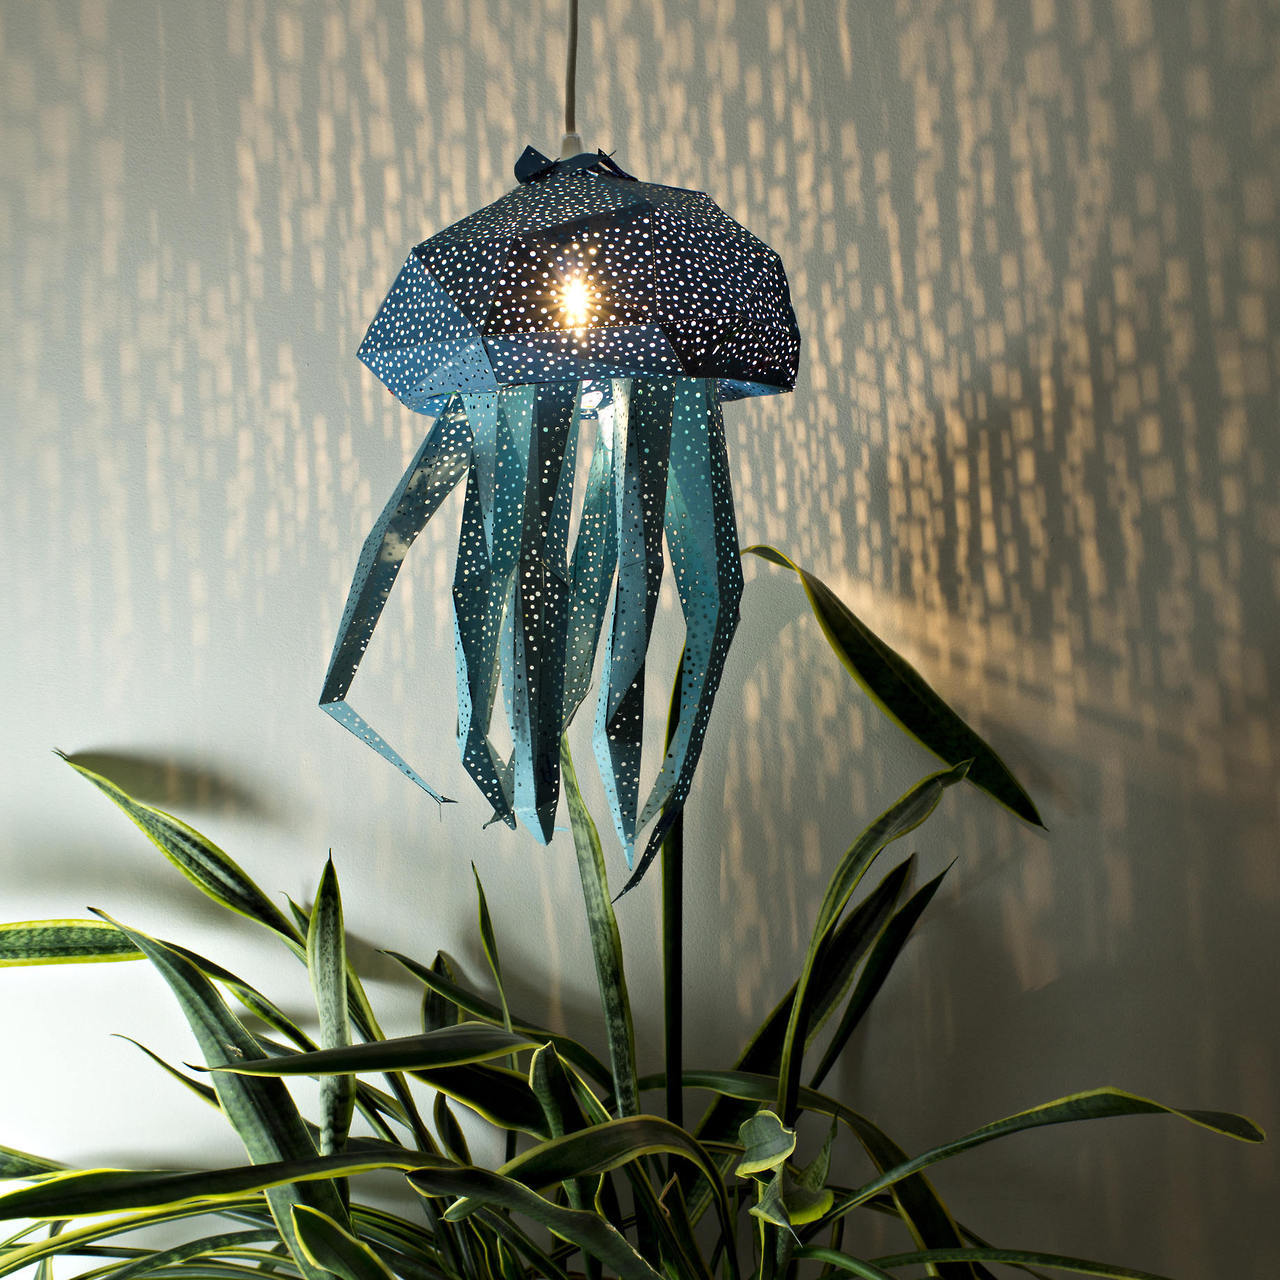 DIY Papercraft Light Shades of Aquatic Life by Vasili (7 pics)